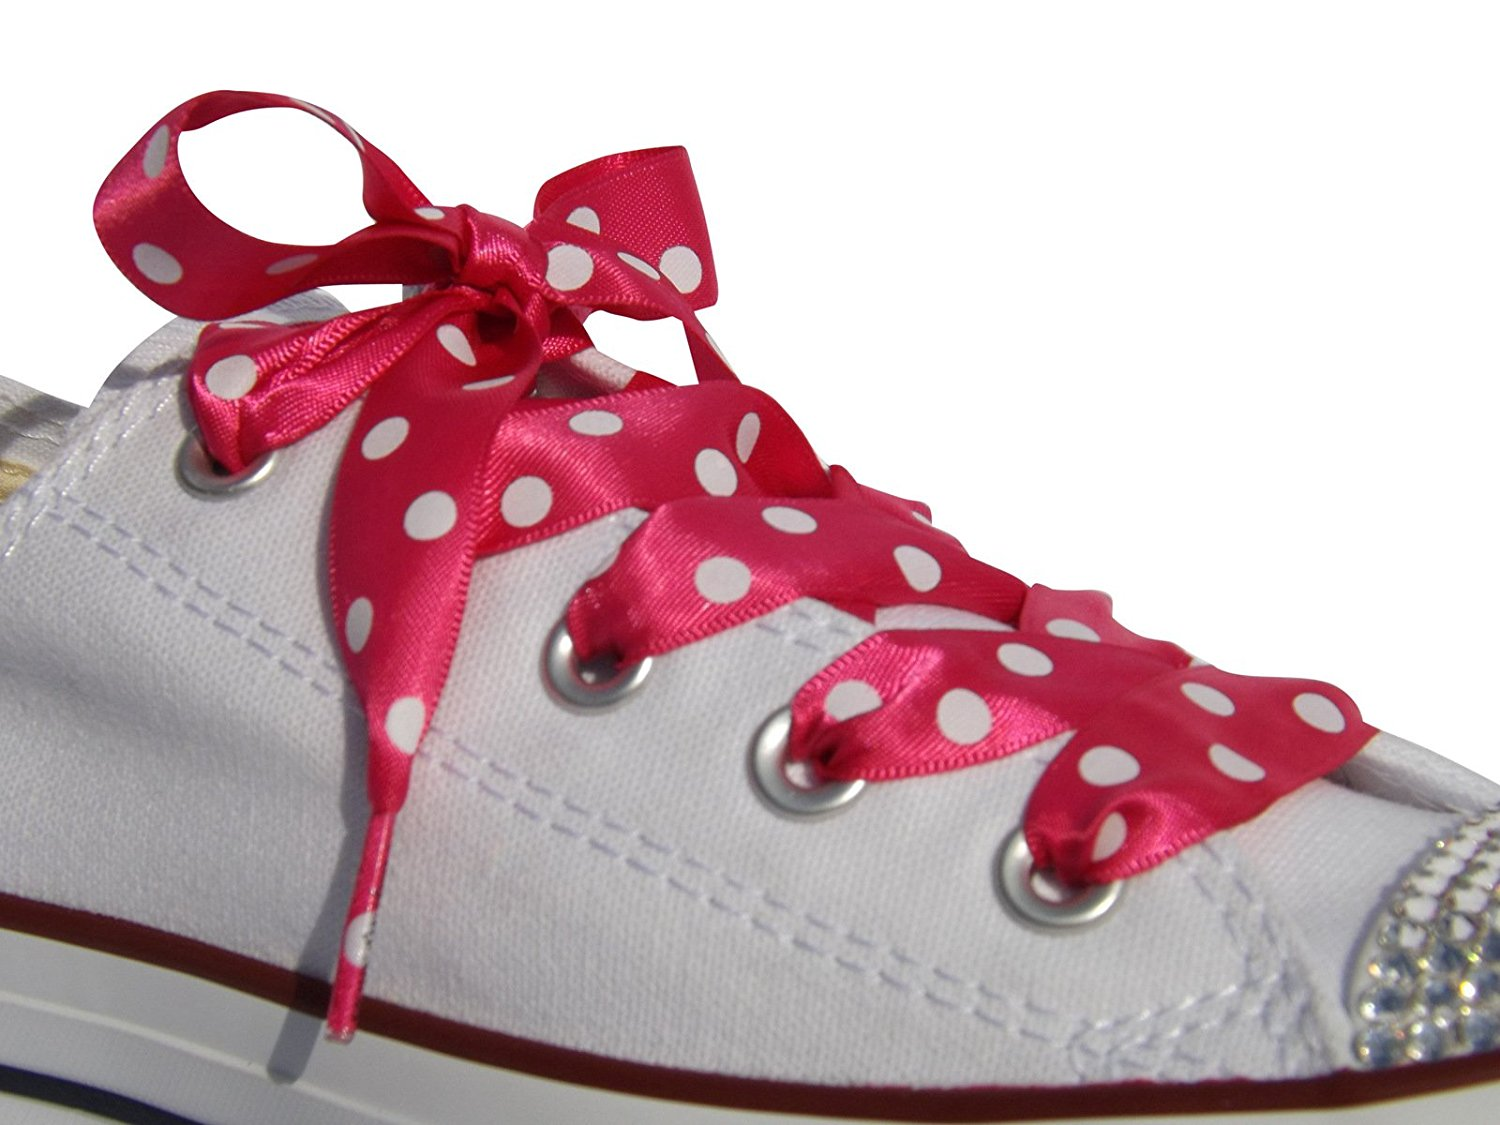 6f16c6230b1f Get Quotations · High Fashion Shocking Pink Polka Dot Satin Ribbon Shoe  Laces   Shoe Strings To Fit Converse